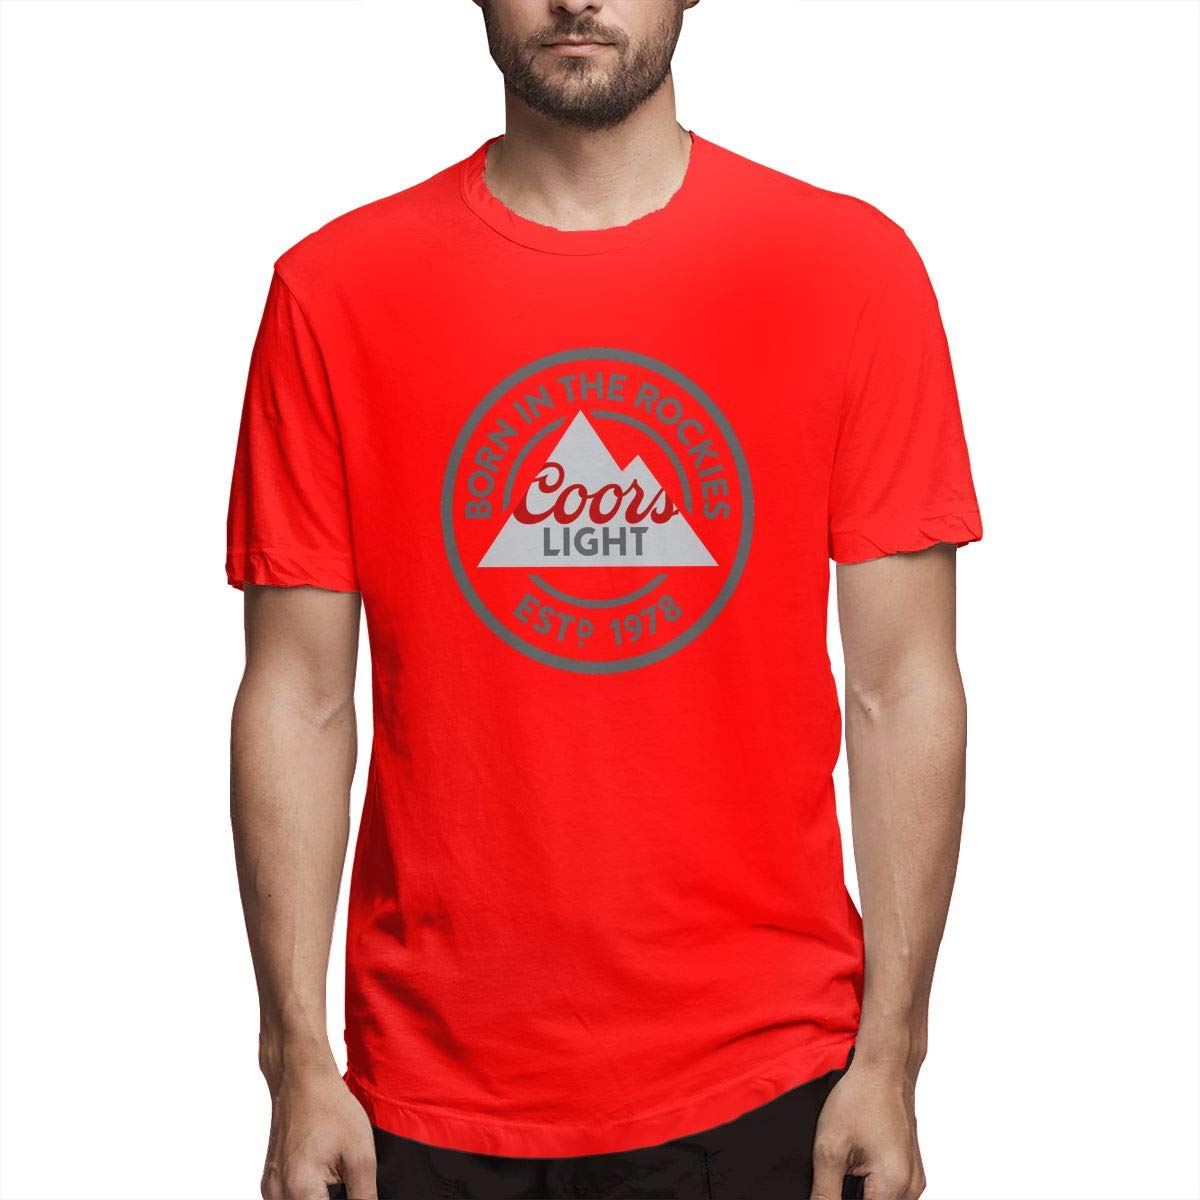 Glkanq S Coort Light Sports Ness Tshirt Leisure Fashion With Appropriate Short Sleeve Shir